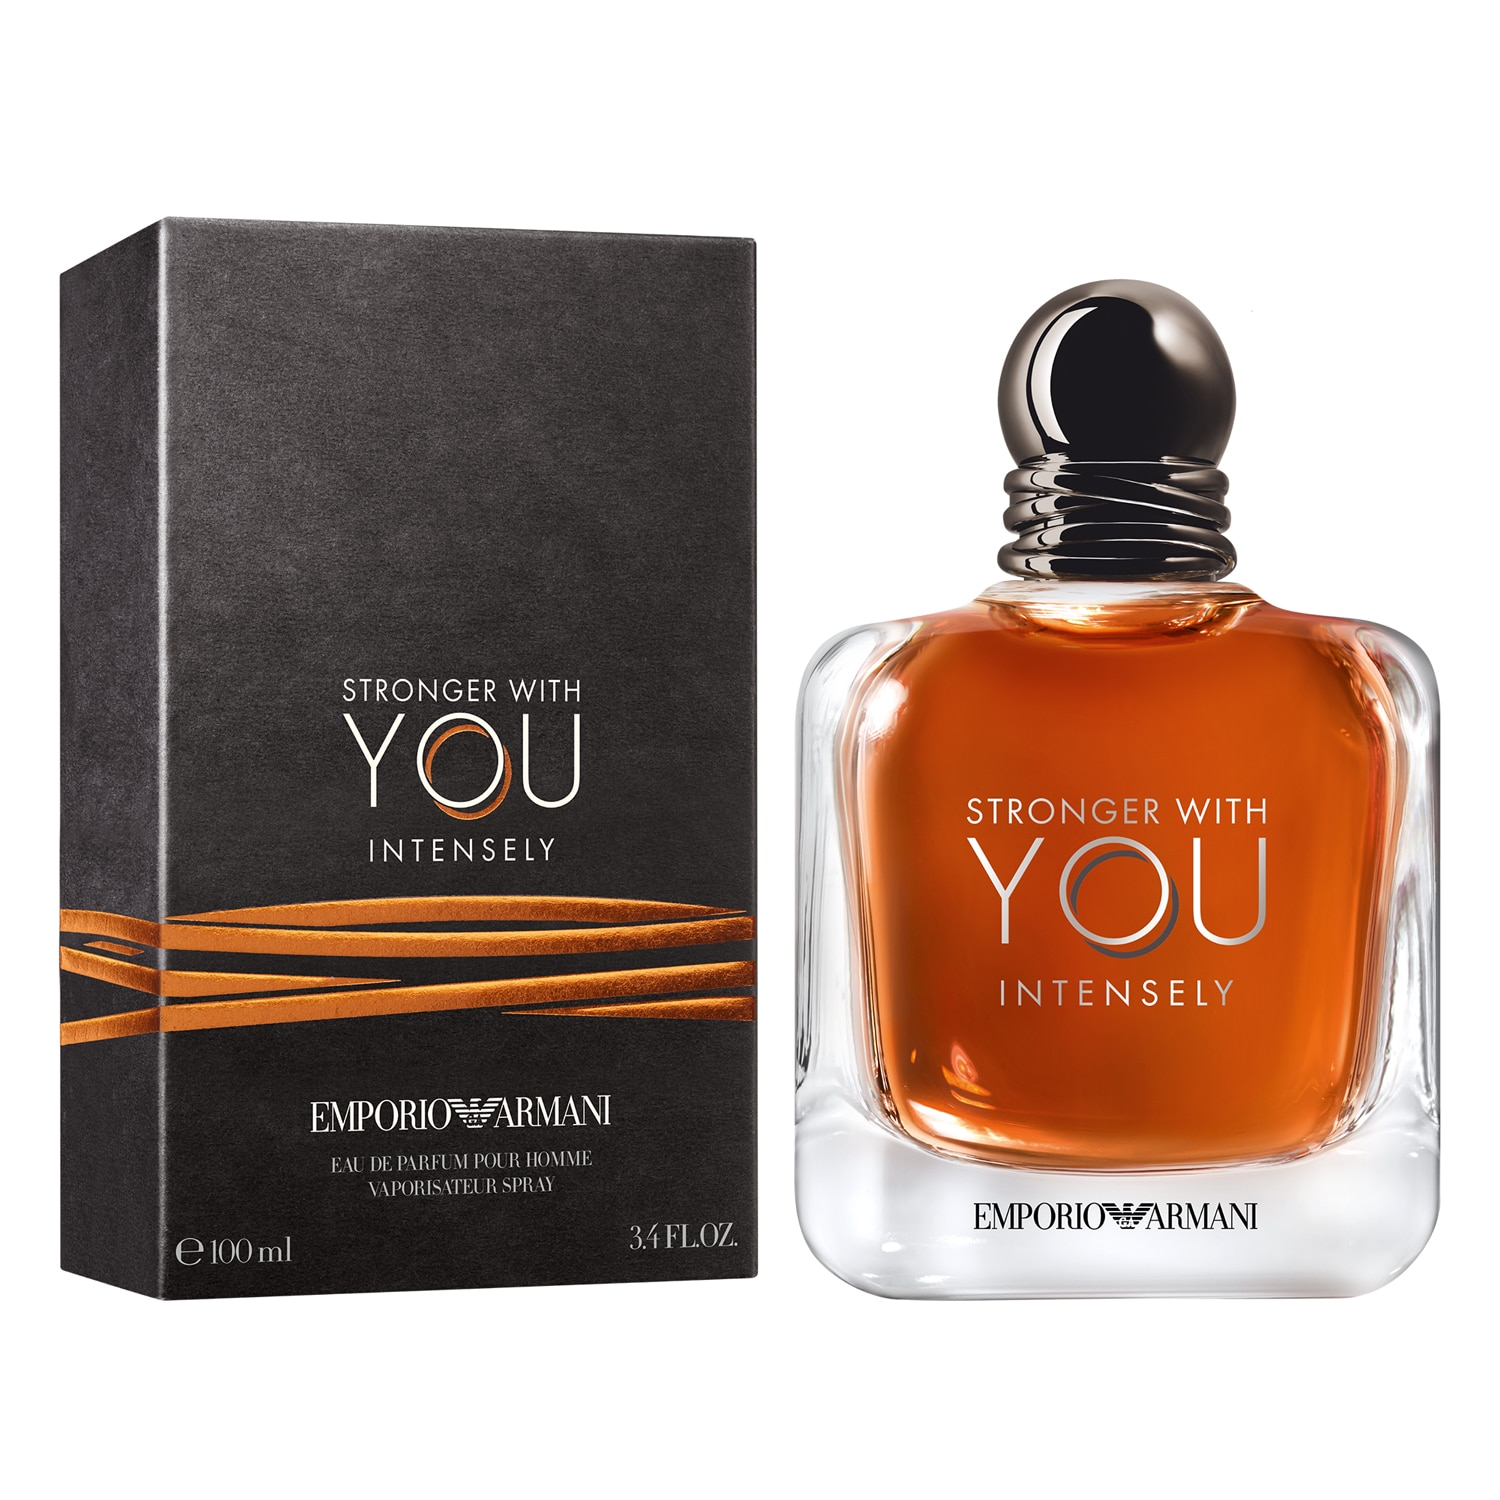 STRONGER WITH YOU EAU DE PARFUM 100ML